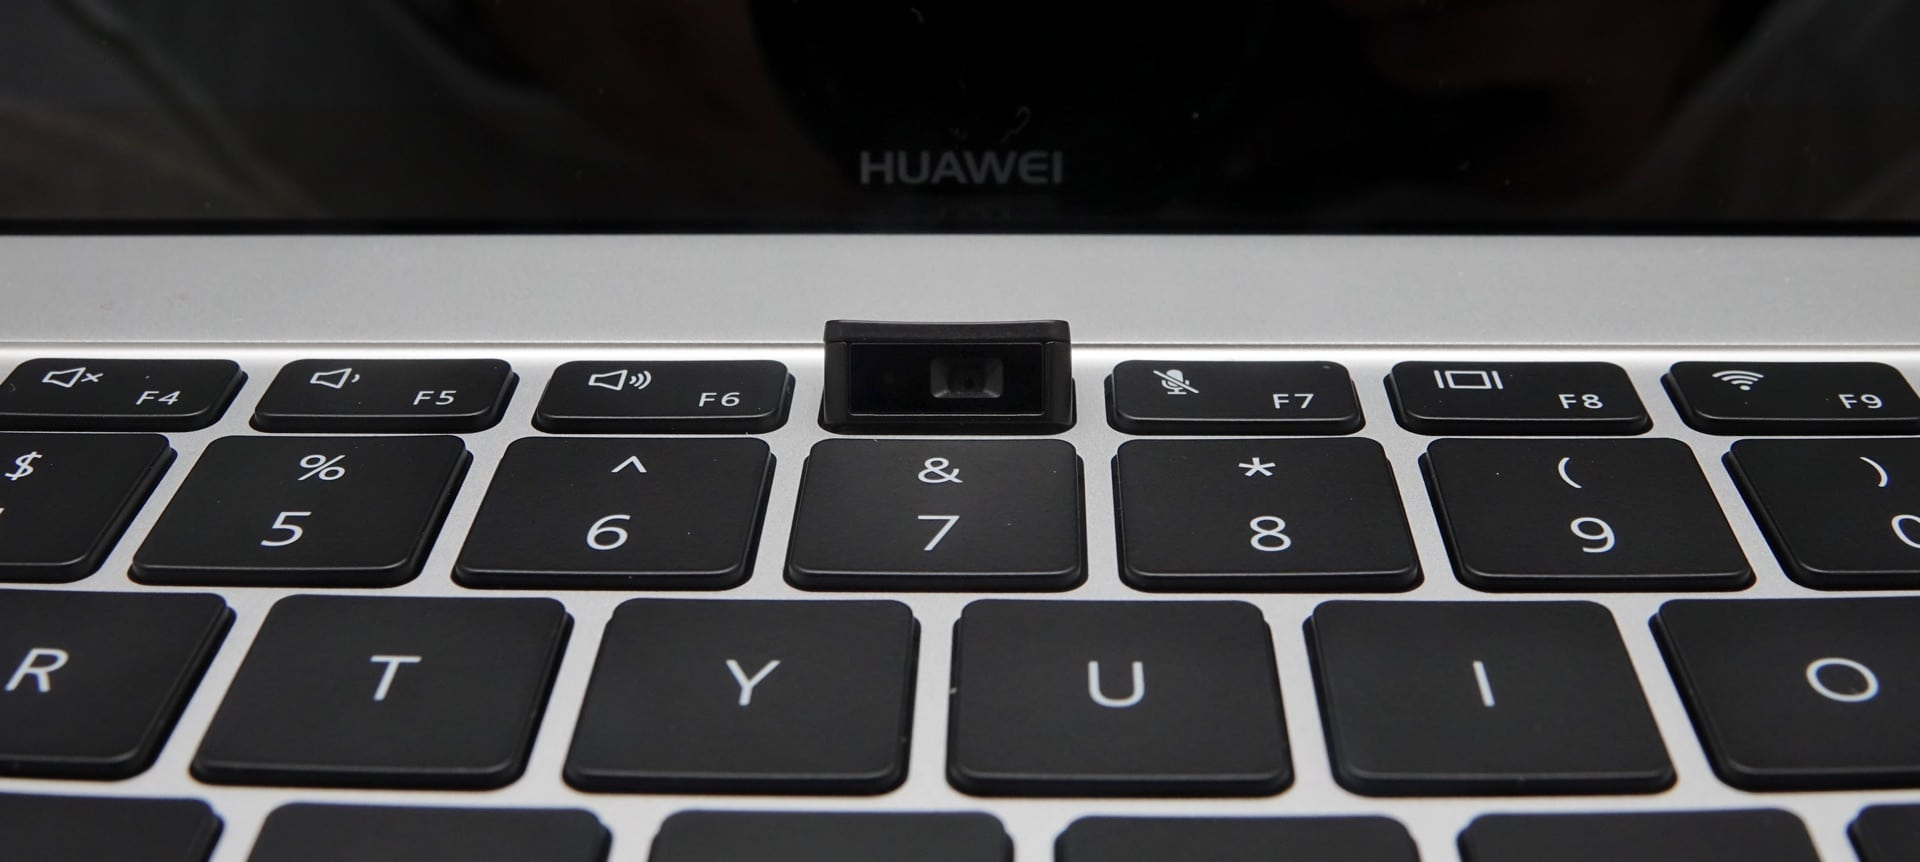 Review: Huawei MateBook X Pro (2018) – Pickr